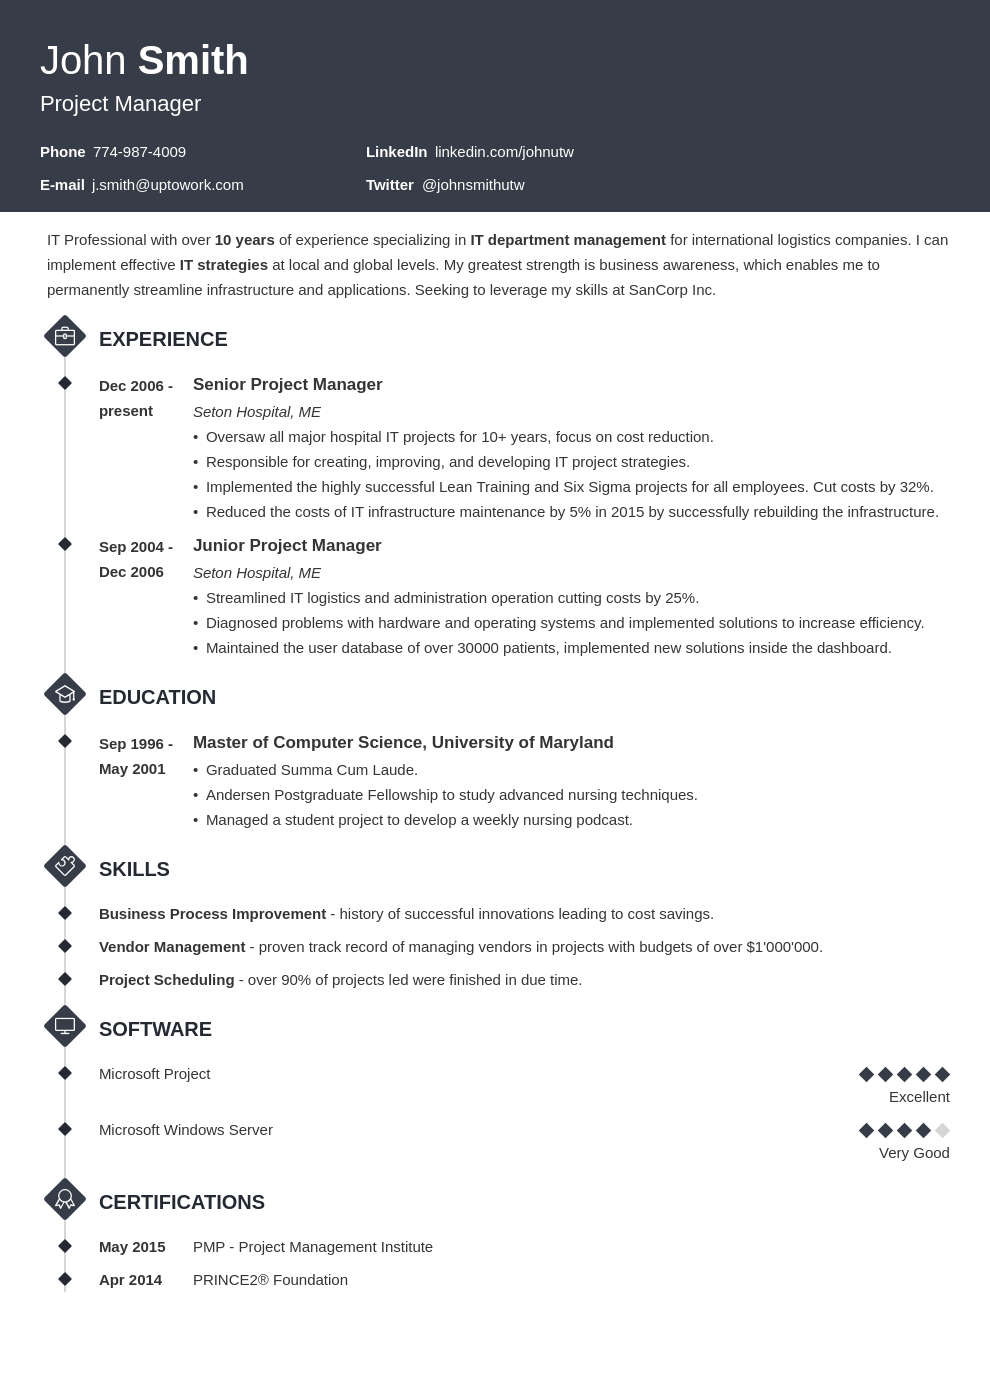 How To Create A Resume Template 20 Resume Templates Download Create Your Resume In 5 Minutes